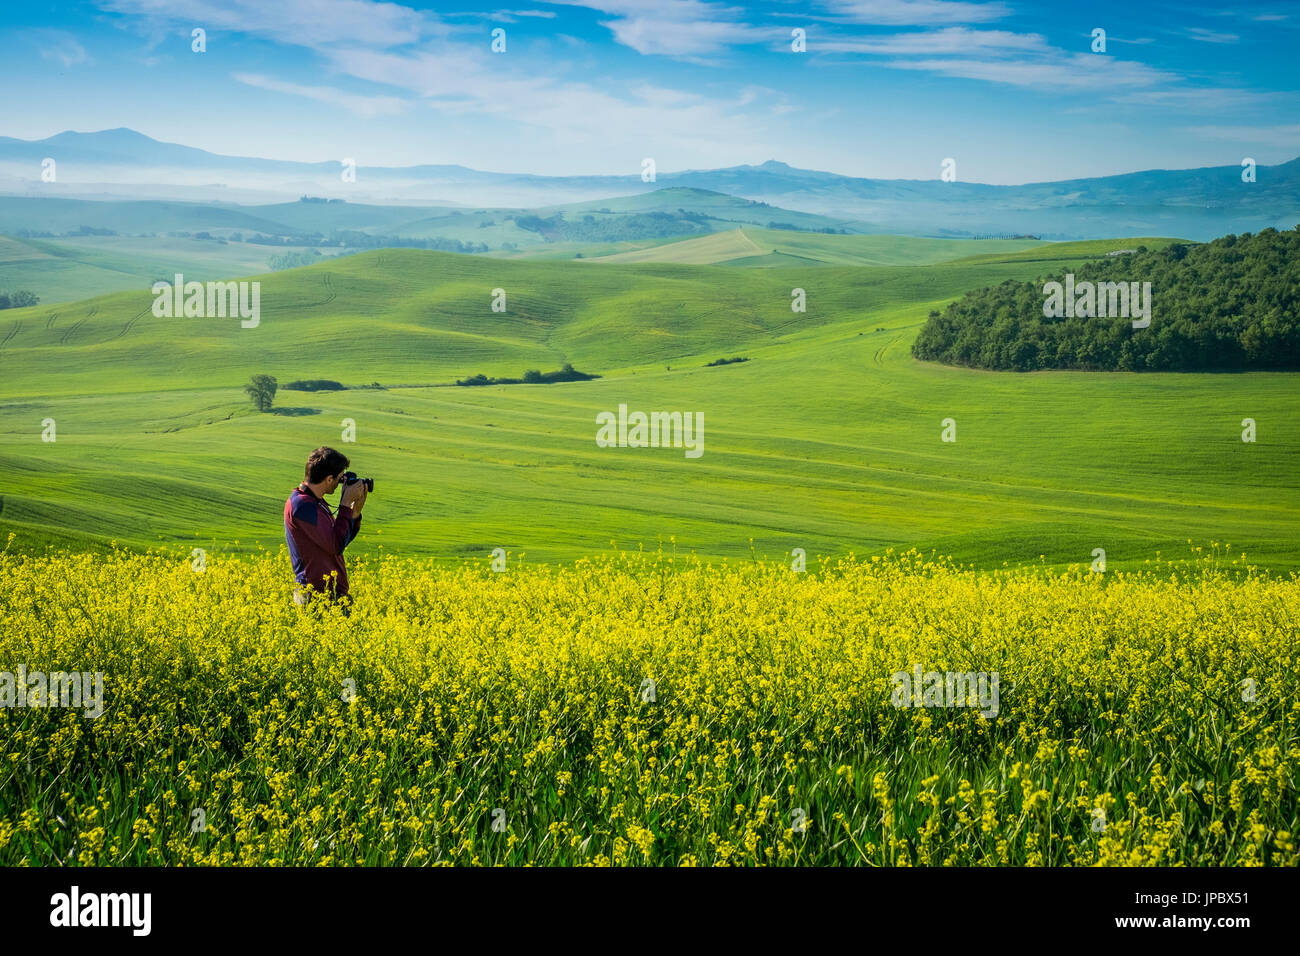 Orcia Valley, Siena district, Tuscany, Italy, Europe. Man takes pictures in a rapessed expanse. - Stock Image